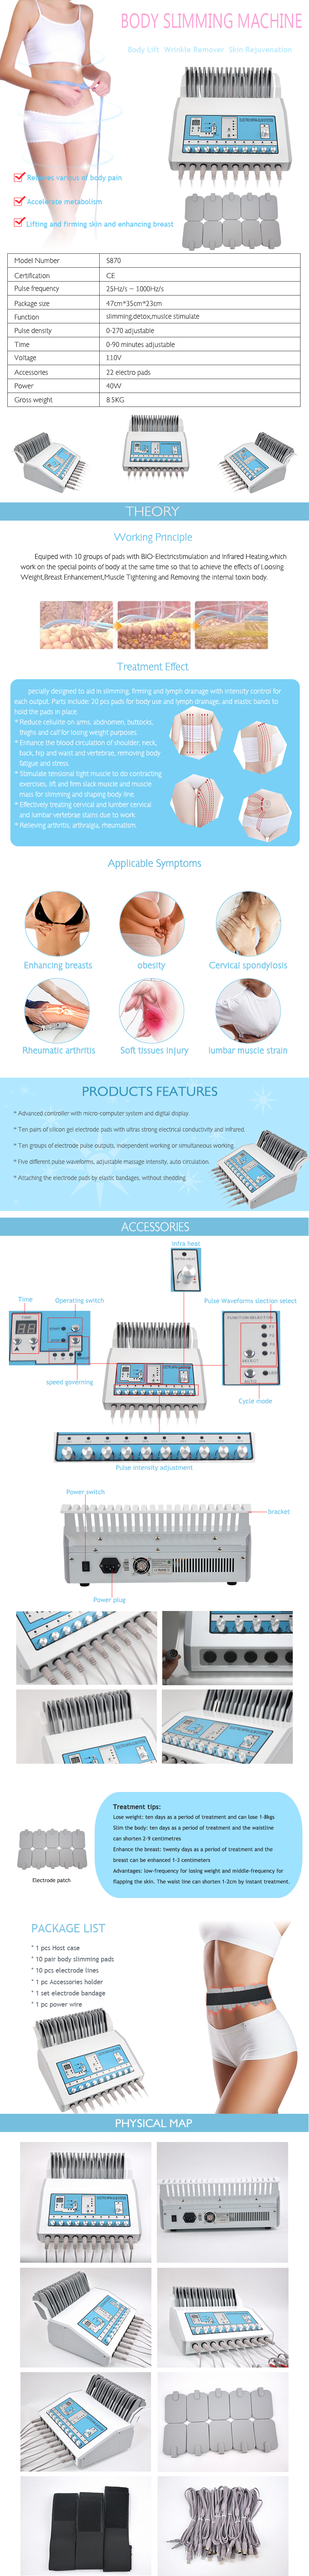 EMS Muscle Stimulation Machine with Heating product details